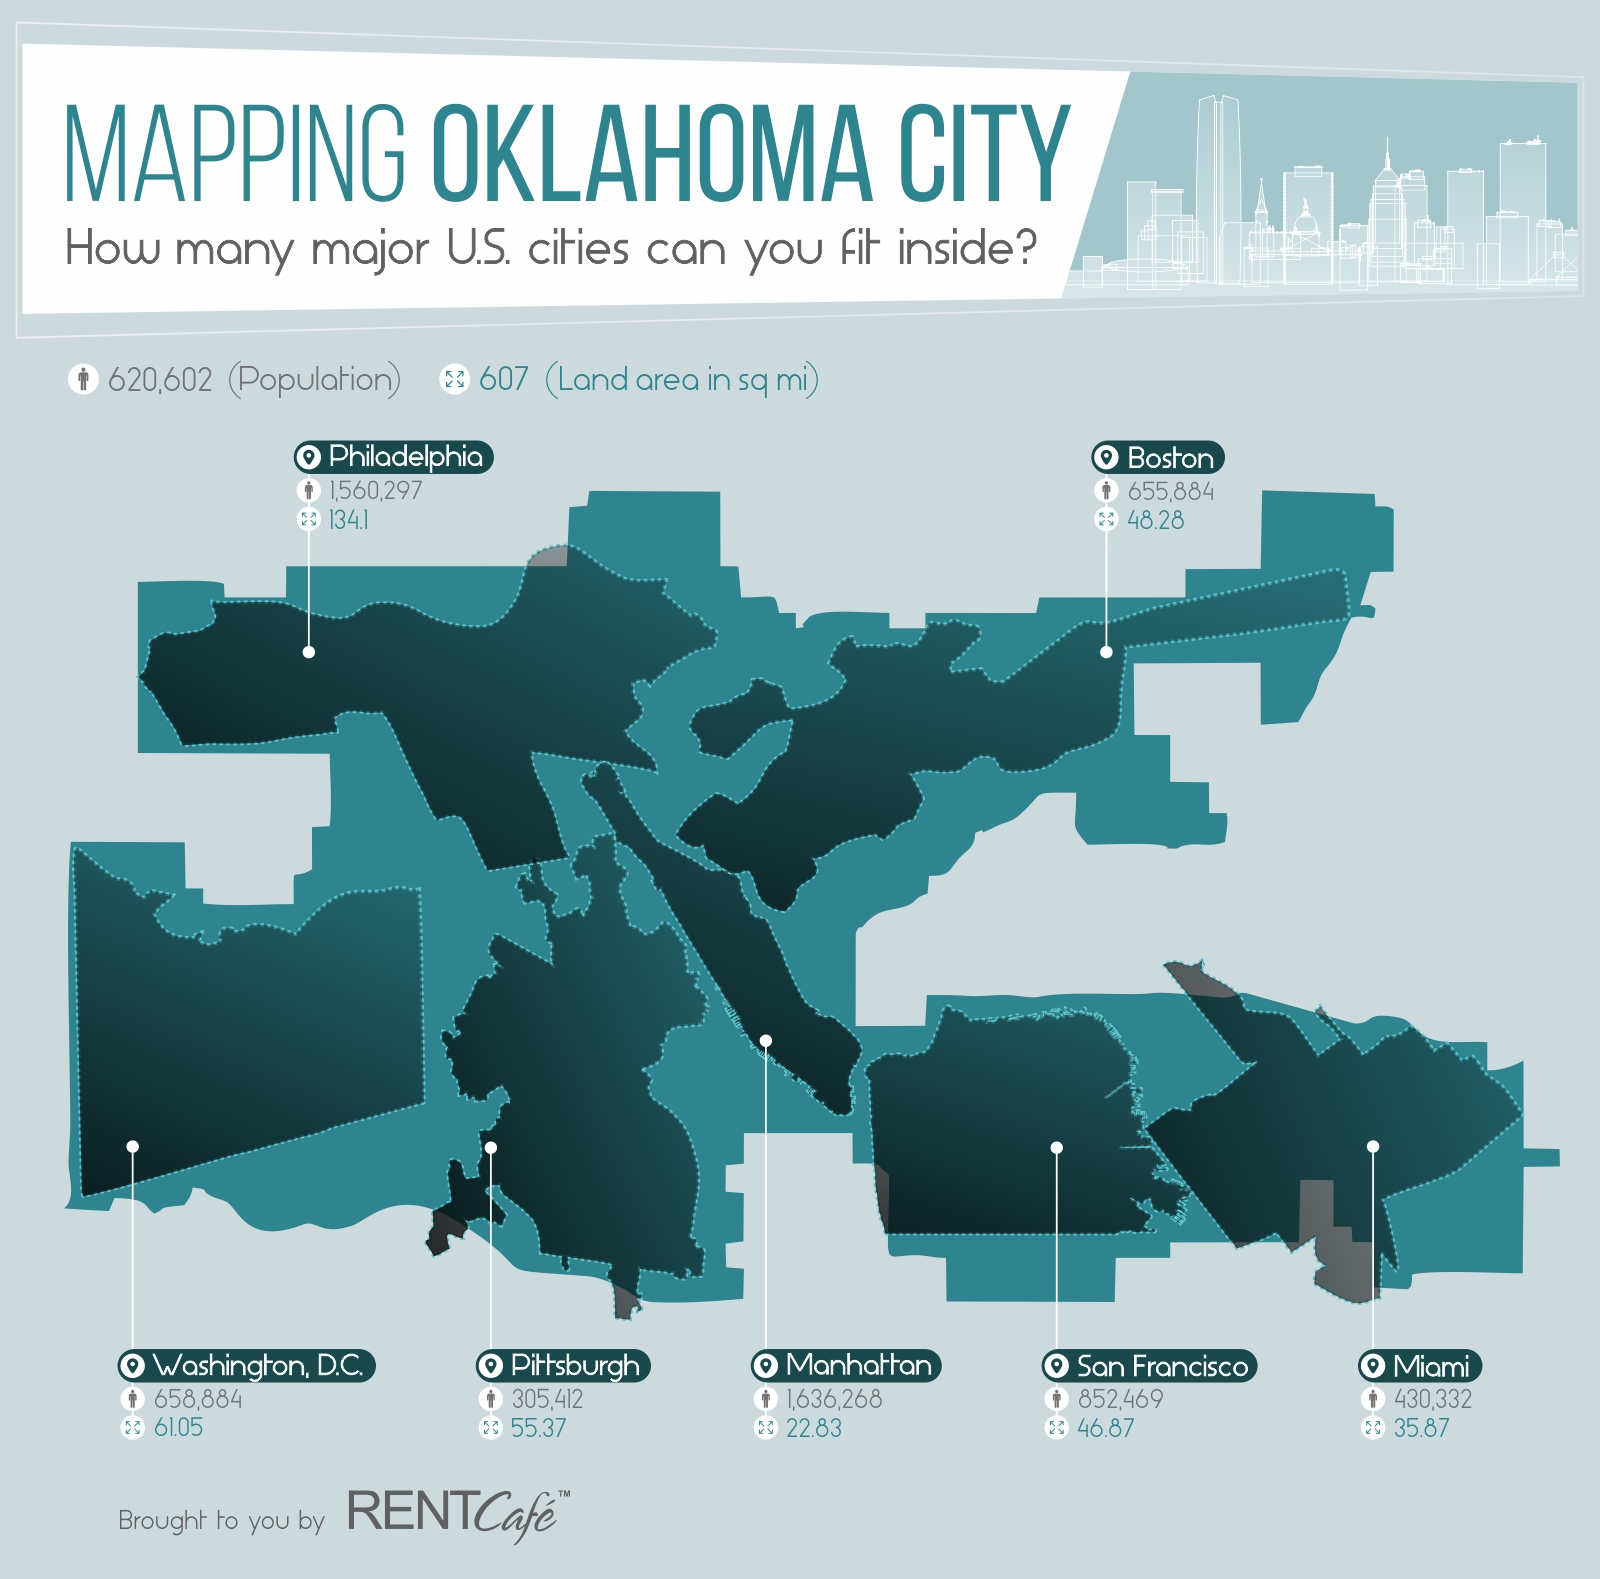 Mapping Oklahoma City: How Many major U.S. Cities can you fit inside?